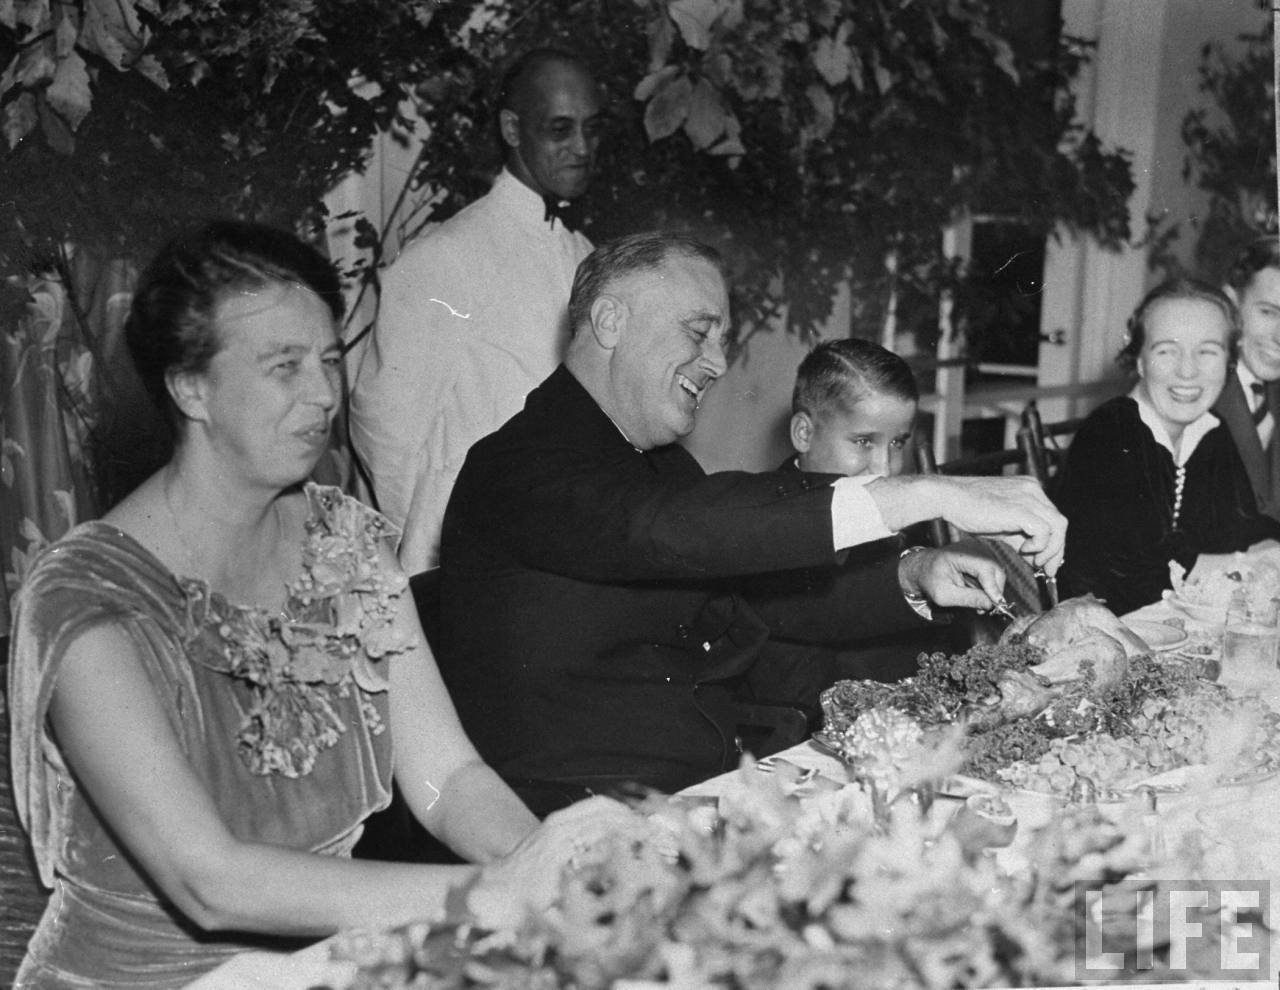 President Franklin D. Roosevelt and his family, smiling and laughing during Thanksgiving dinner. Photographer:Thomas D. Mcavoy. © Time Inc